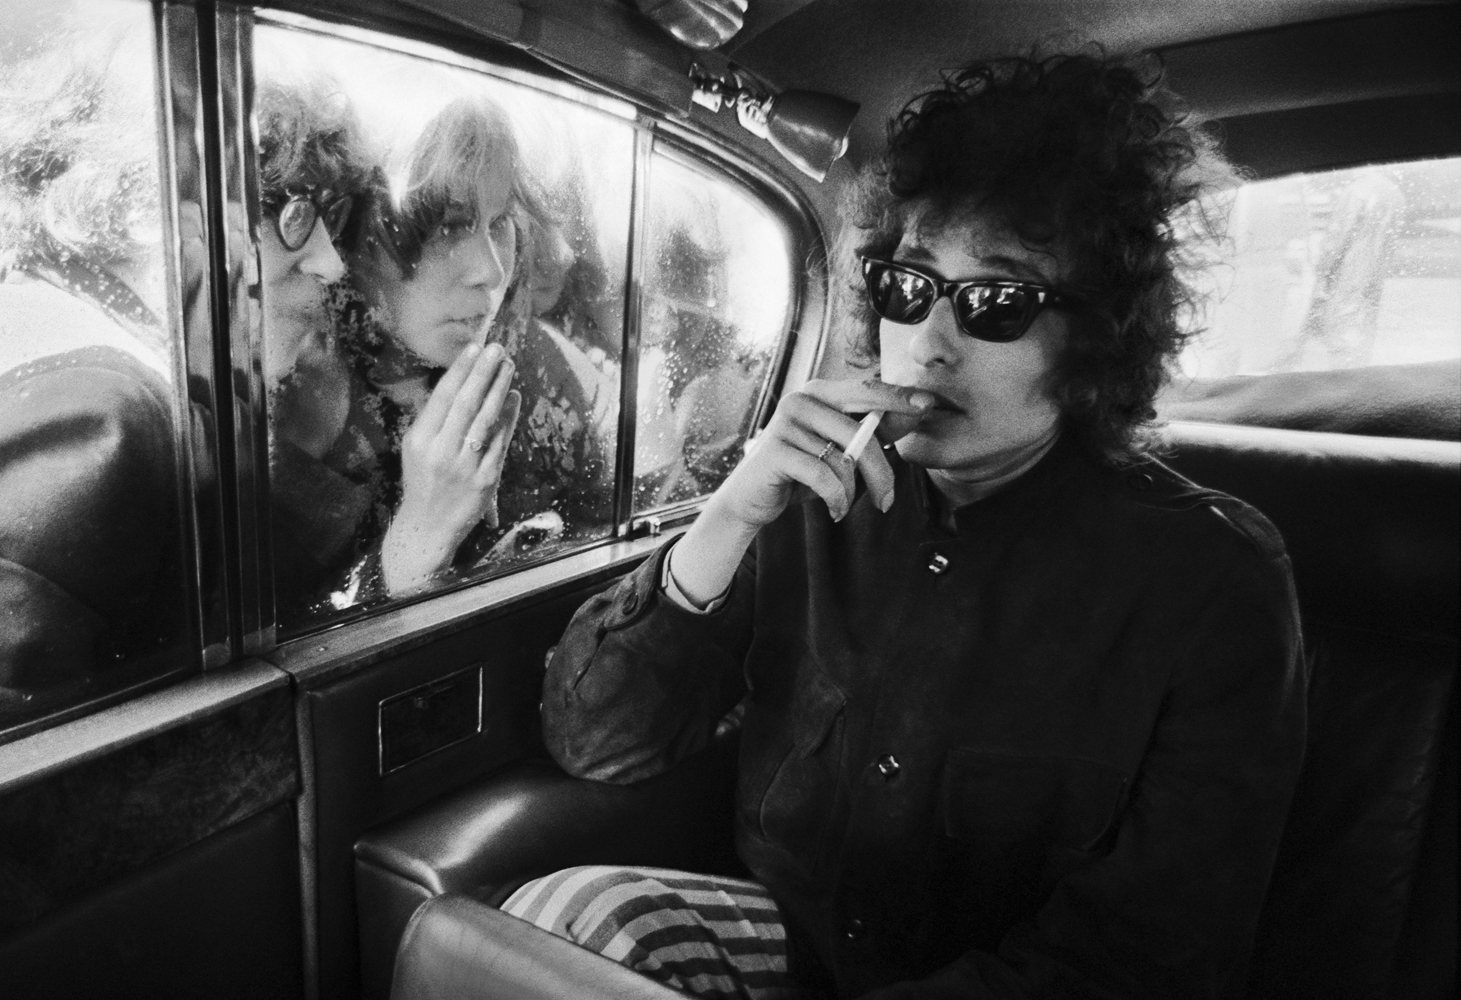 Barry Feinstein's photograph of musician Bob Dylan and fans, take in London in 1966.